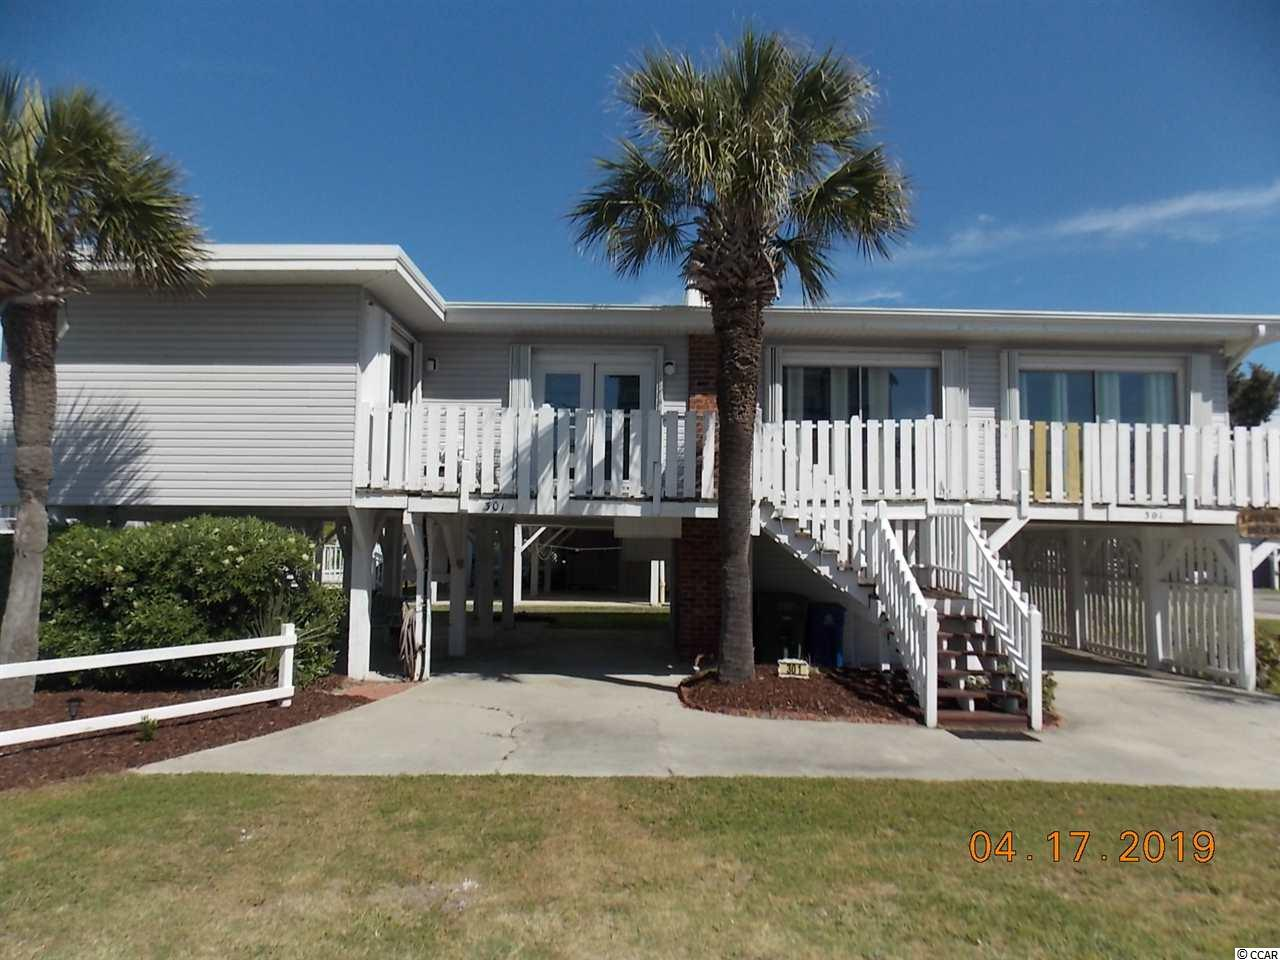 One of North Myrtle Beach 3 Bedroom Homes for Sale at 301 52nd Ave. N